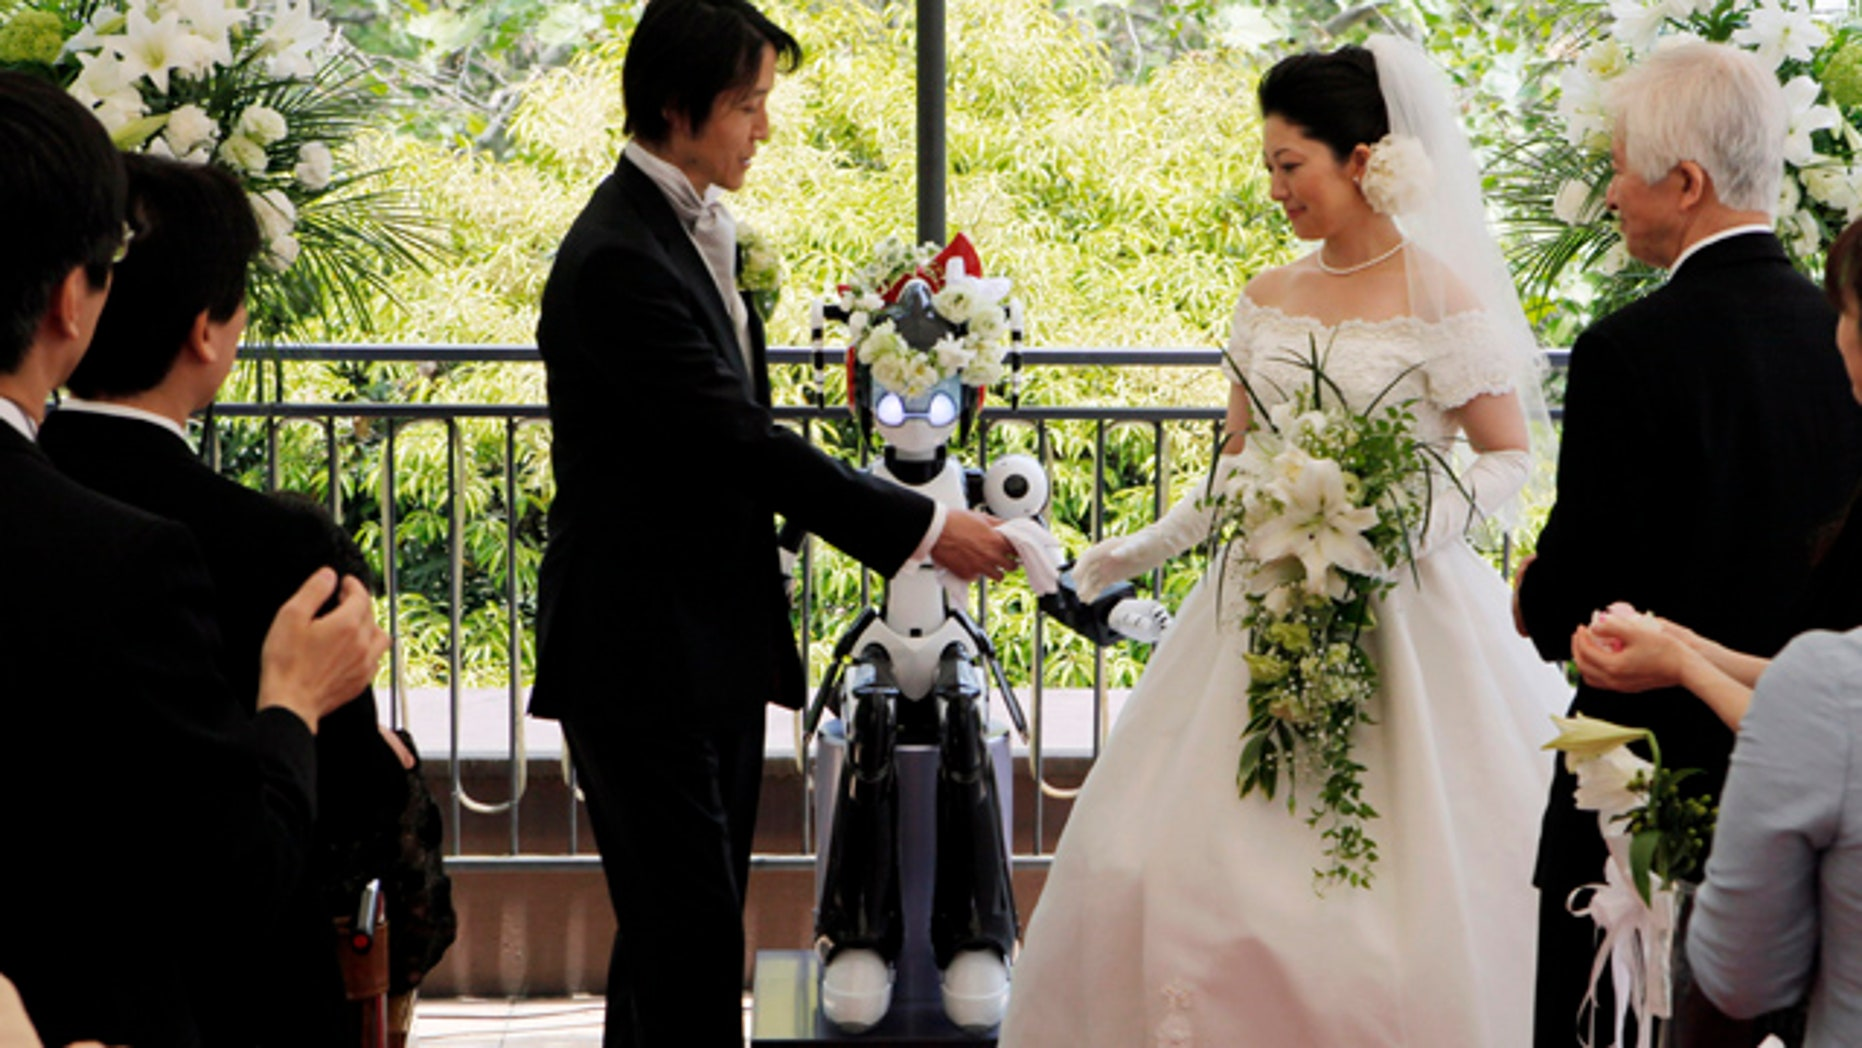 May 16: The 'I-Fairy' wears a wreath of flowers as it directs a wedding ceremony for groom Tomohiro Shibata 42, and bride Satoko Inouye, 36, at a Tokyo restaurant.